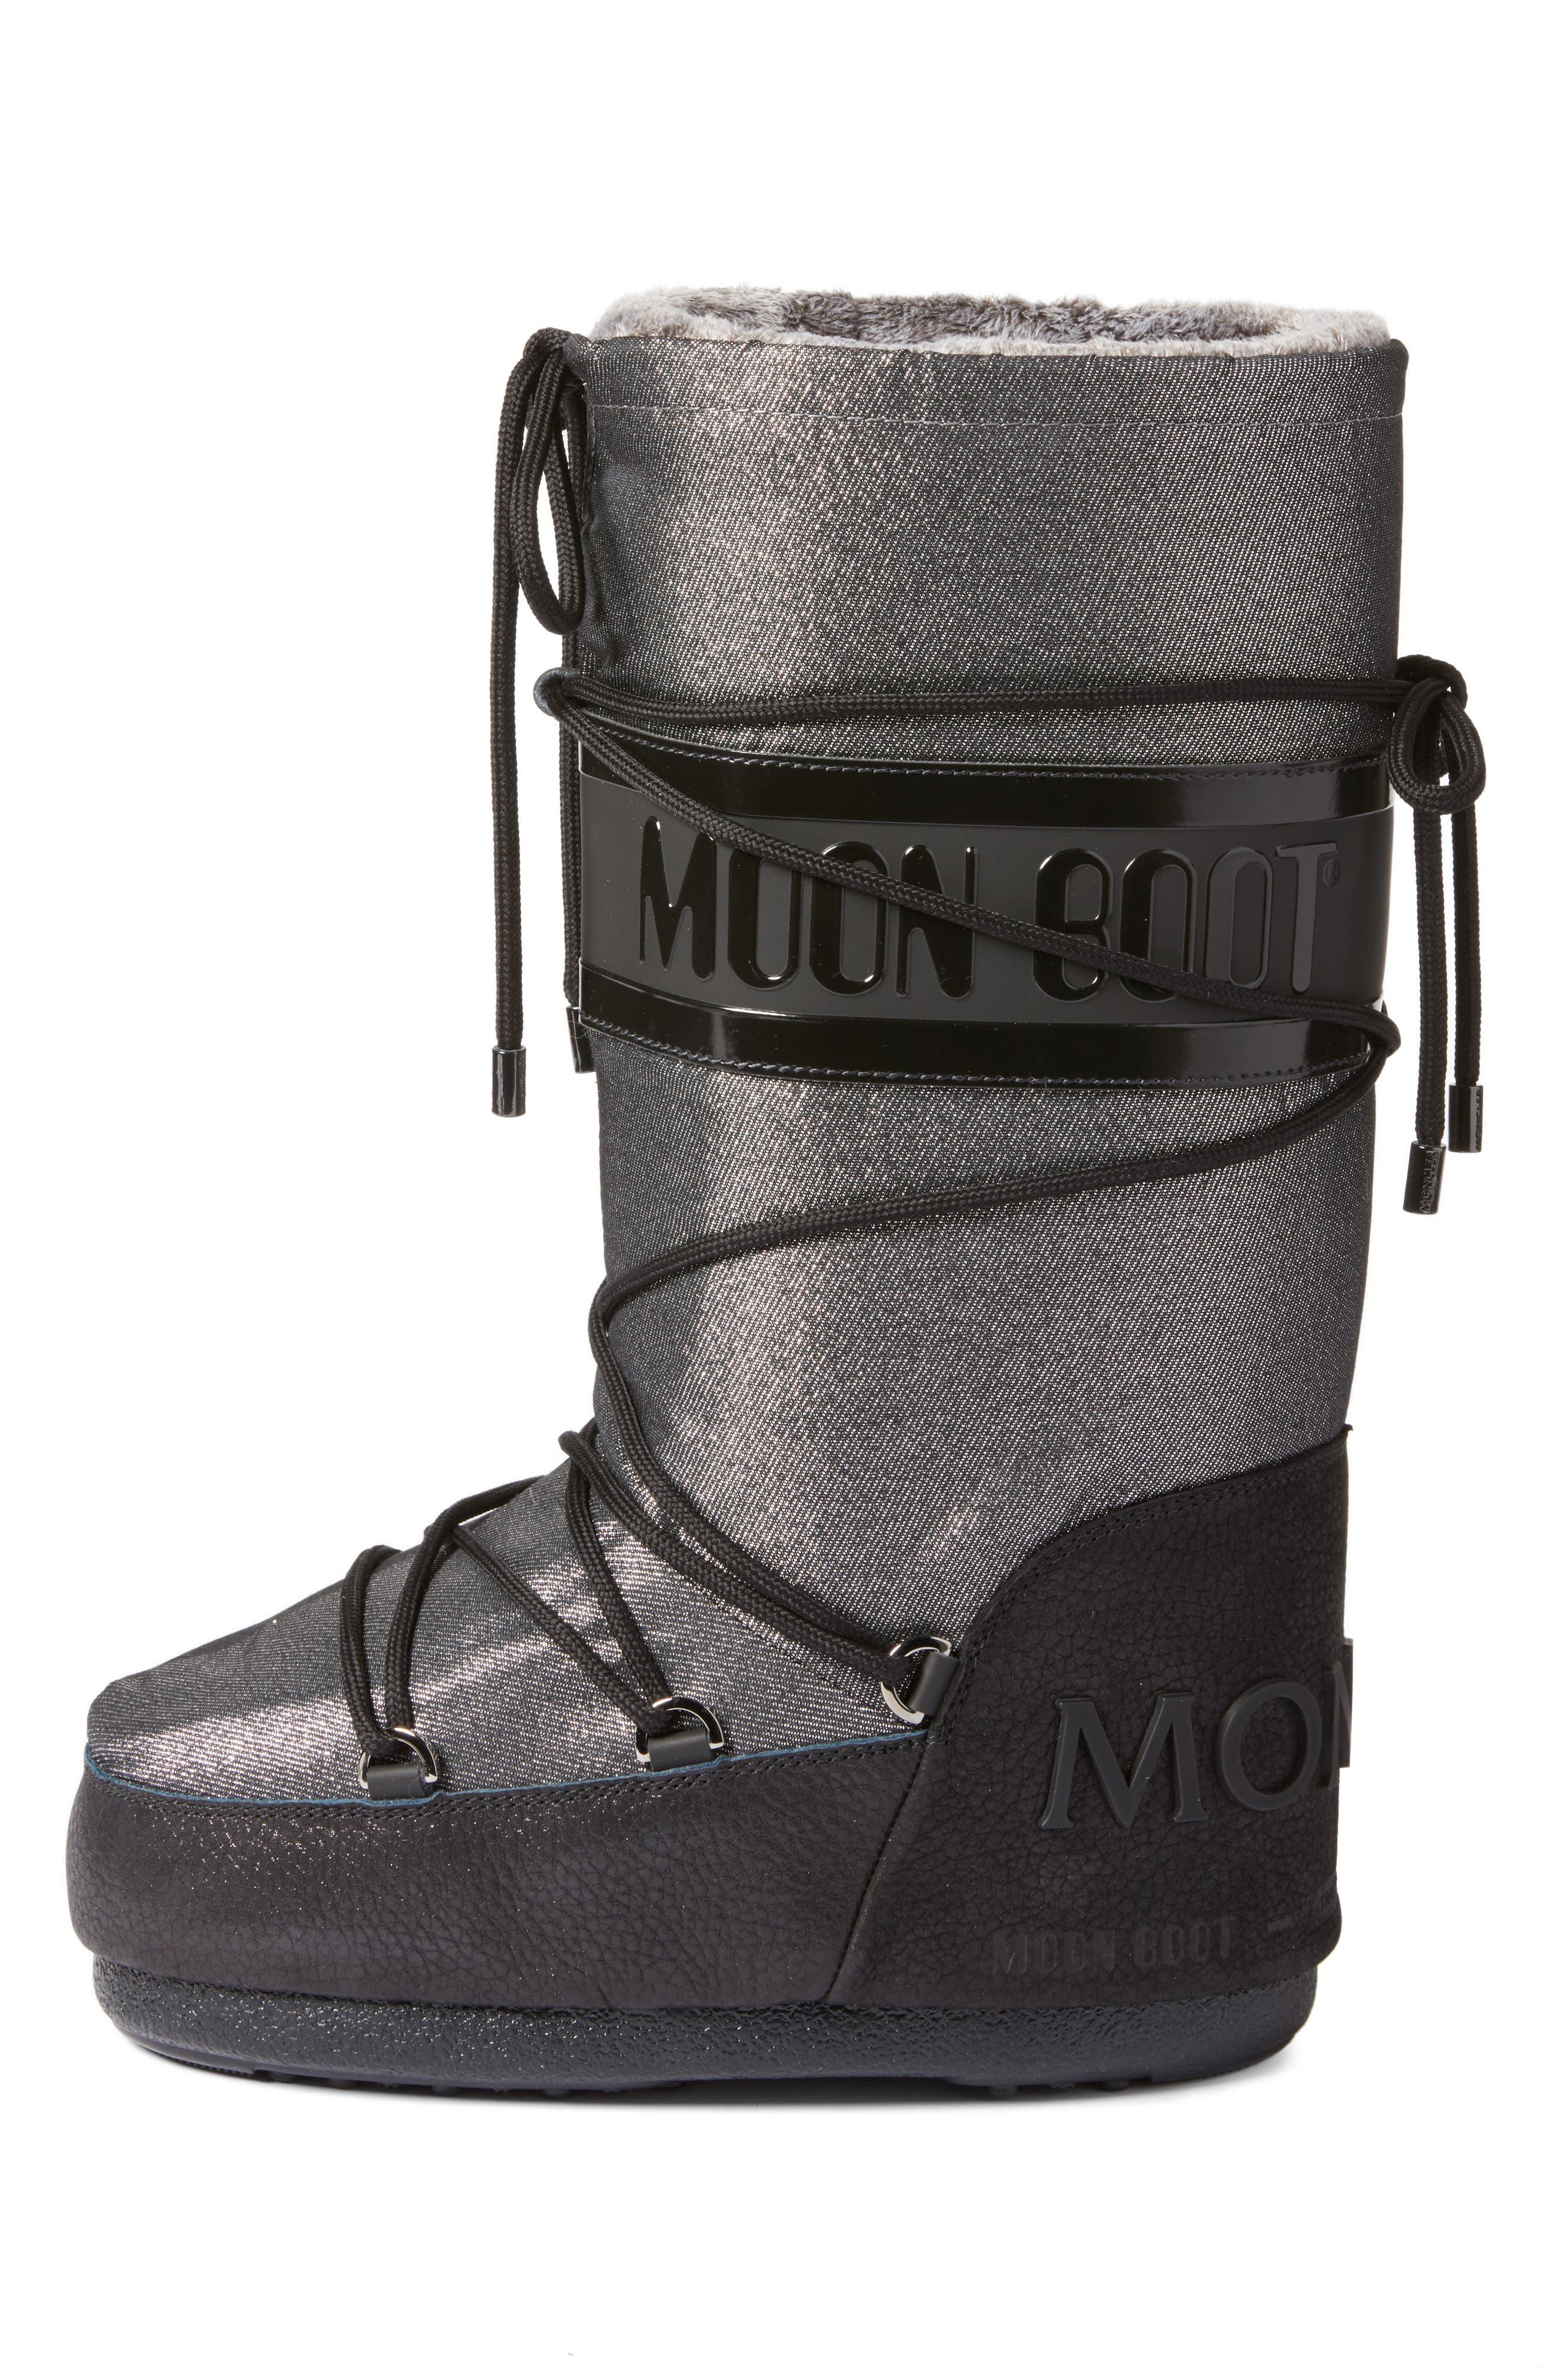 Saturne Moon Boot,                             Alternate thumbnail 3, color,                             040